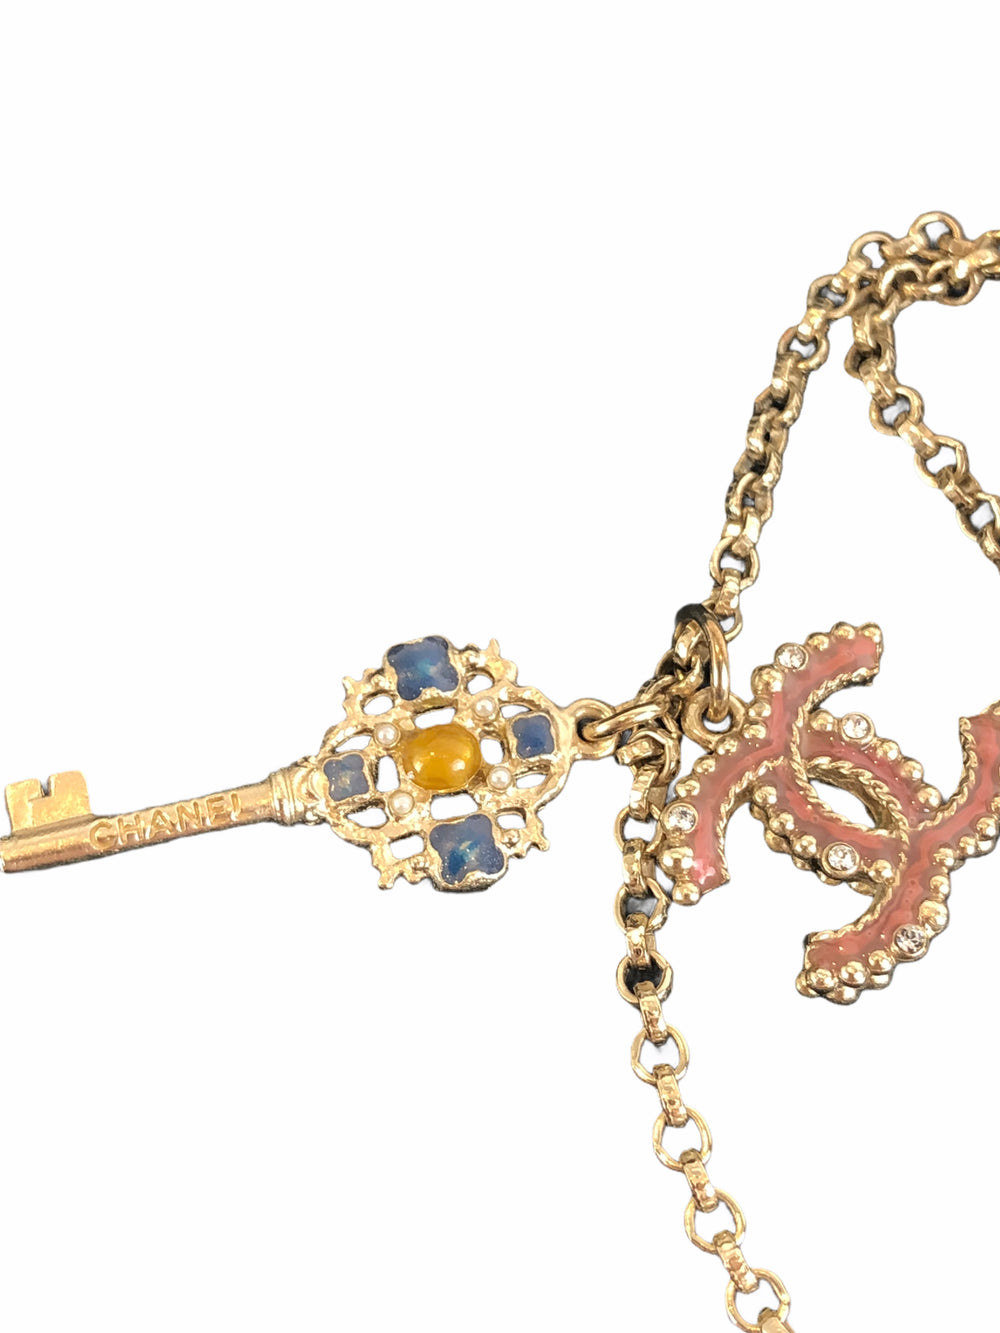 Chanel Charm Bracelet in Gold Tone - As Seen on Instagram 30/09/2020